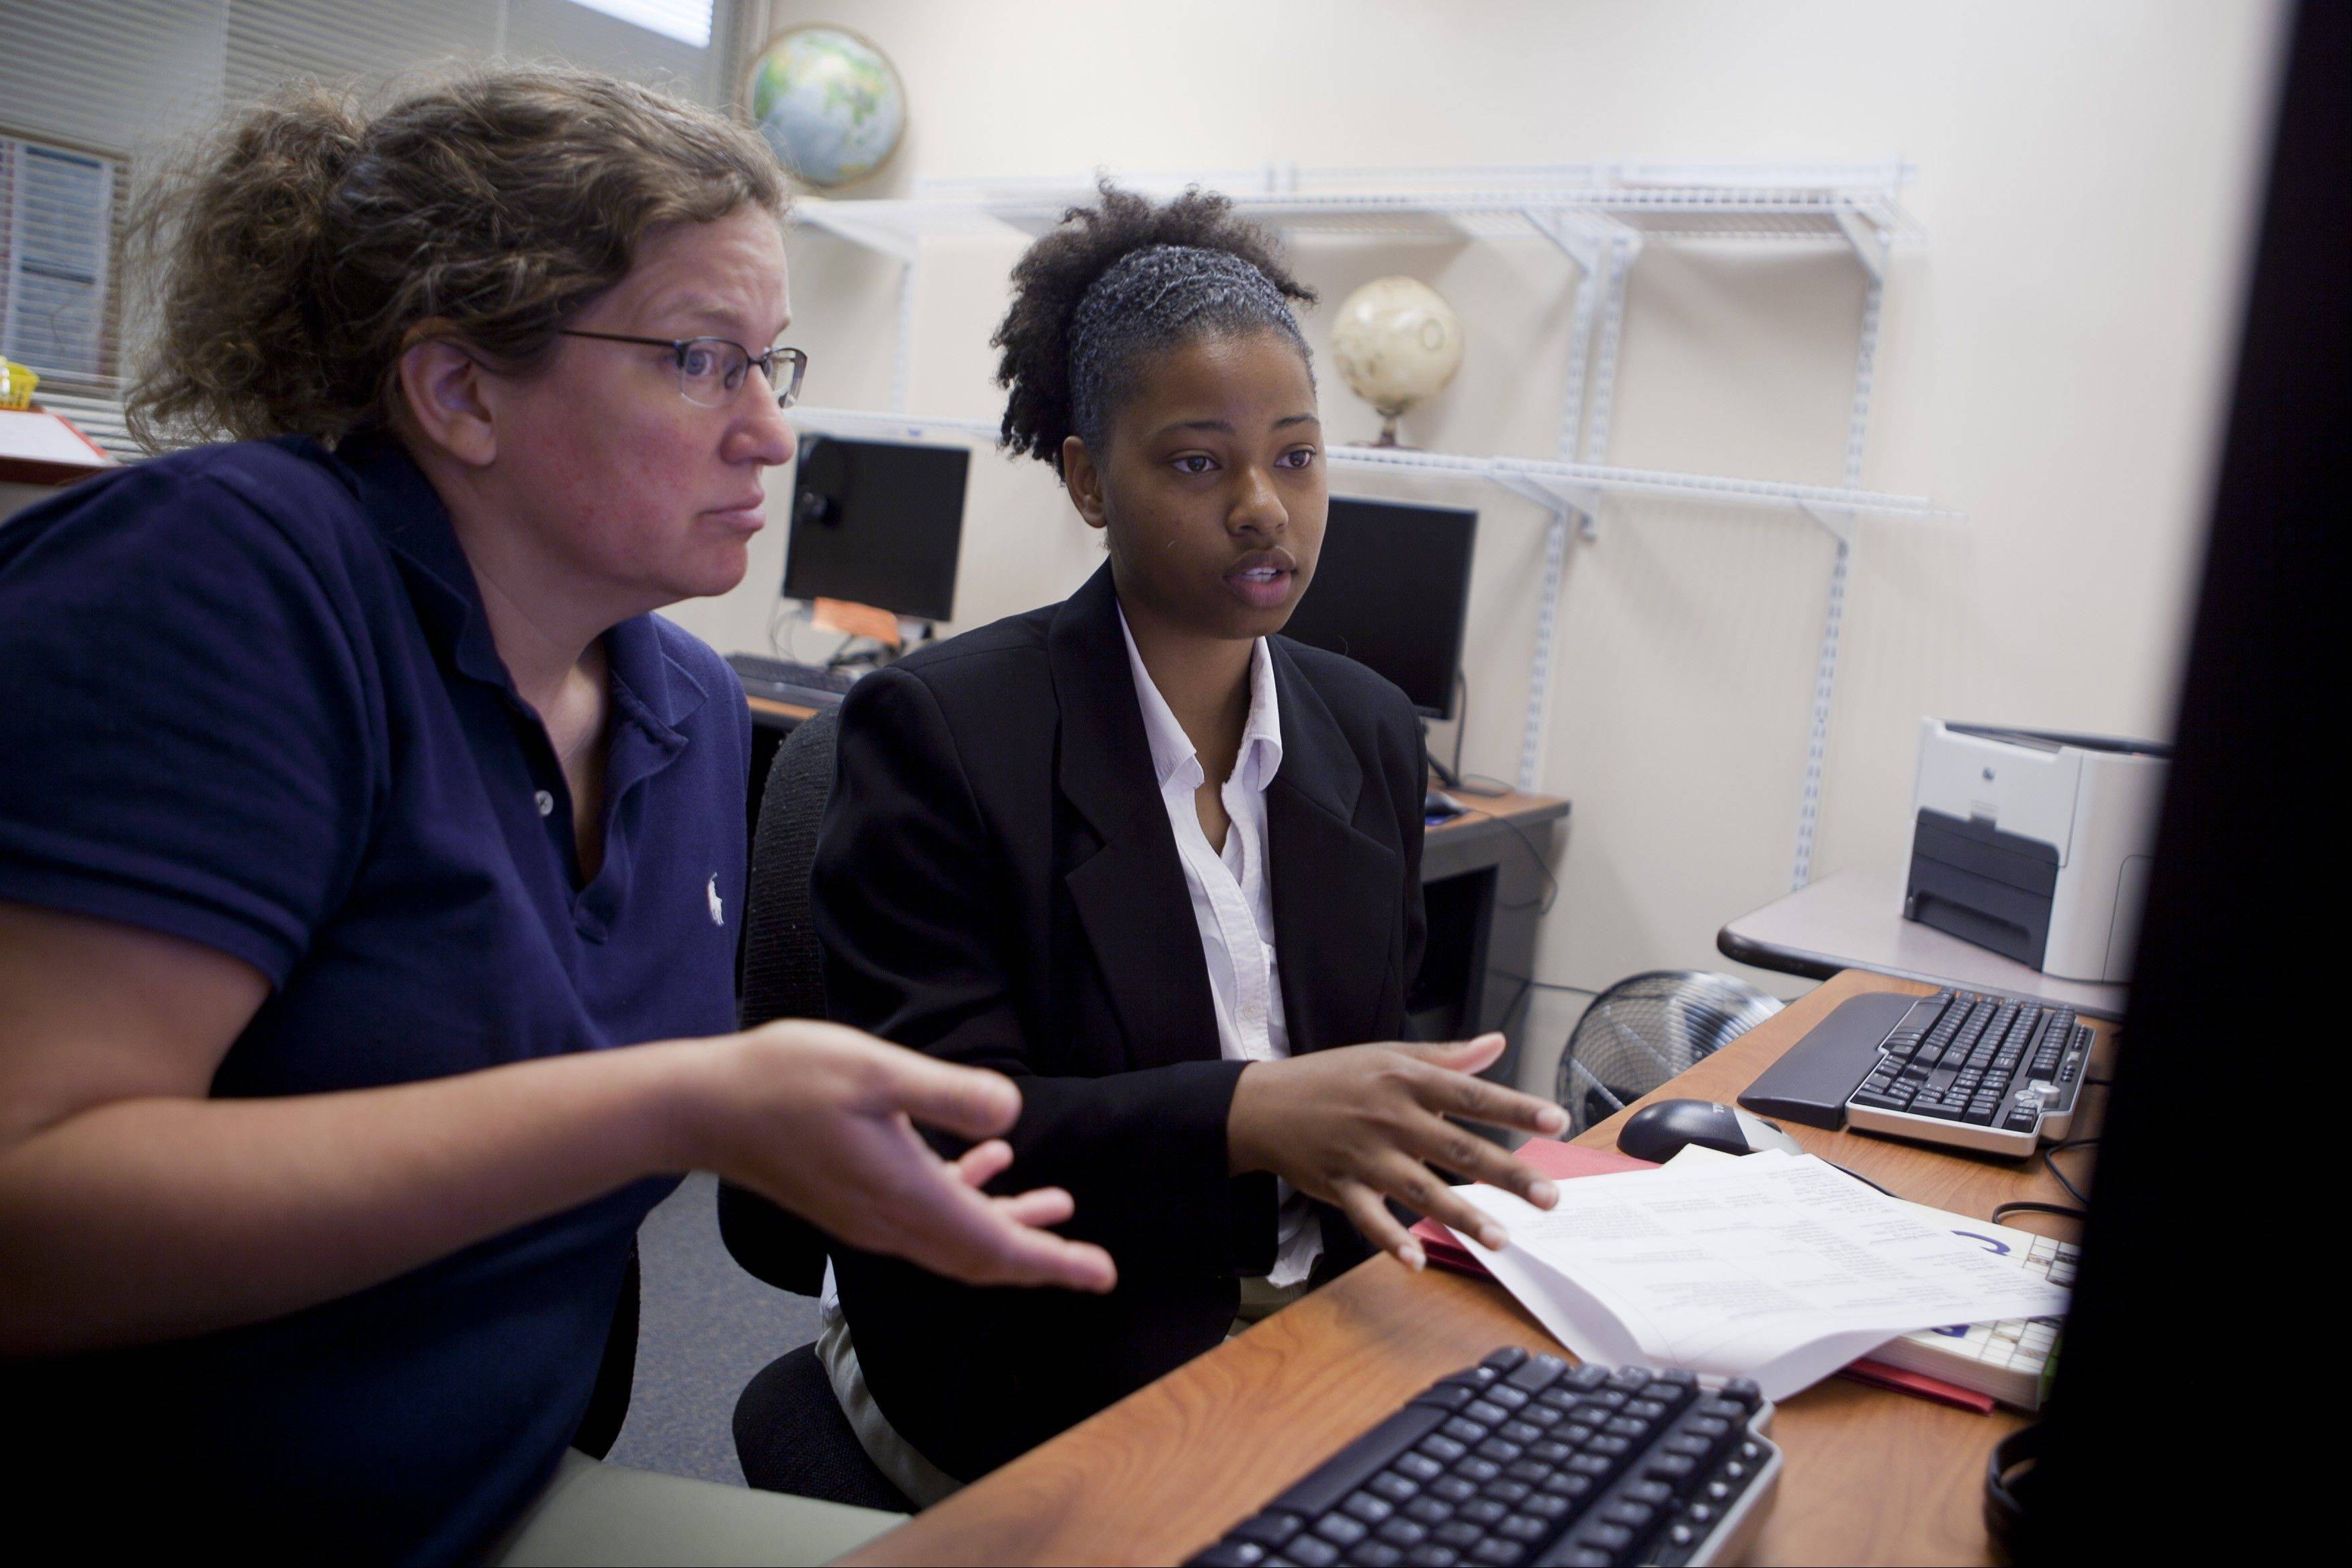 Heidi Gauthier, left, helps jobseeker Jennifer Thomas look at job postings online at the education and employment area of N Street Village community center in Washington, D.C..